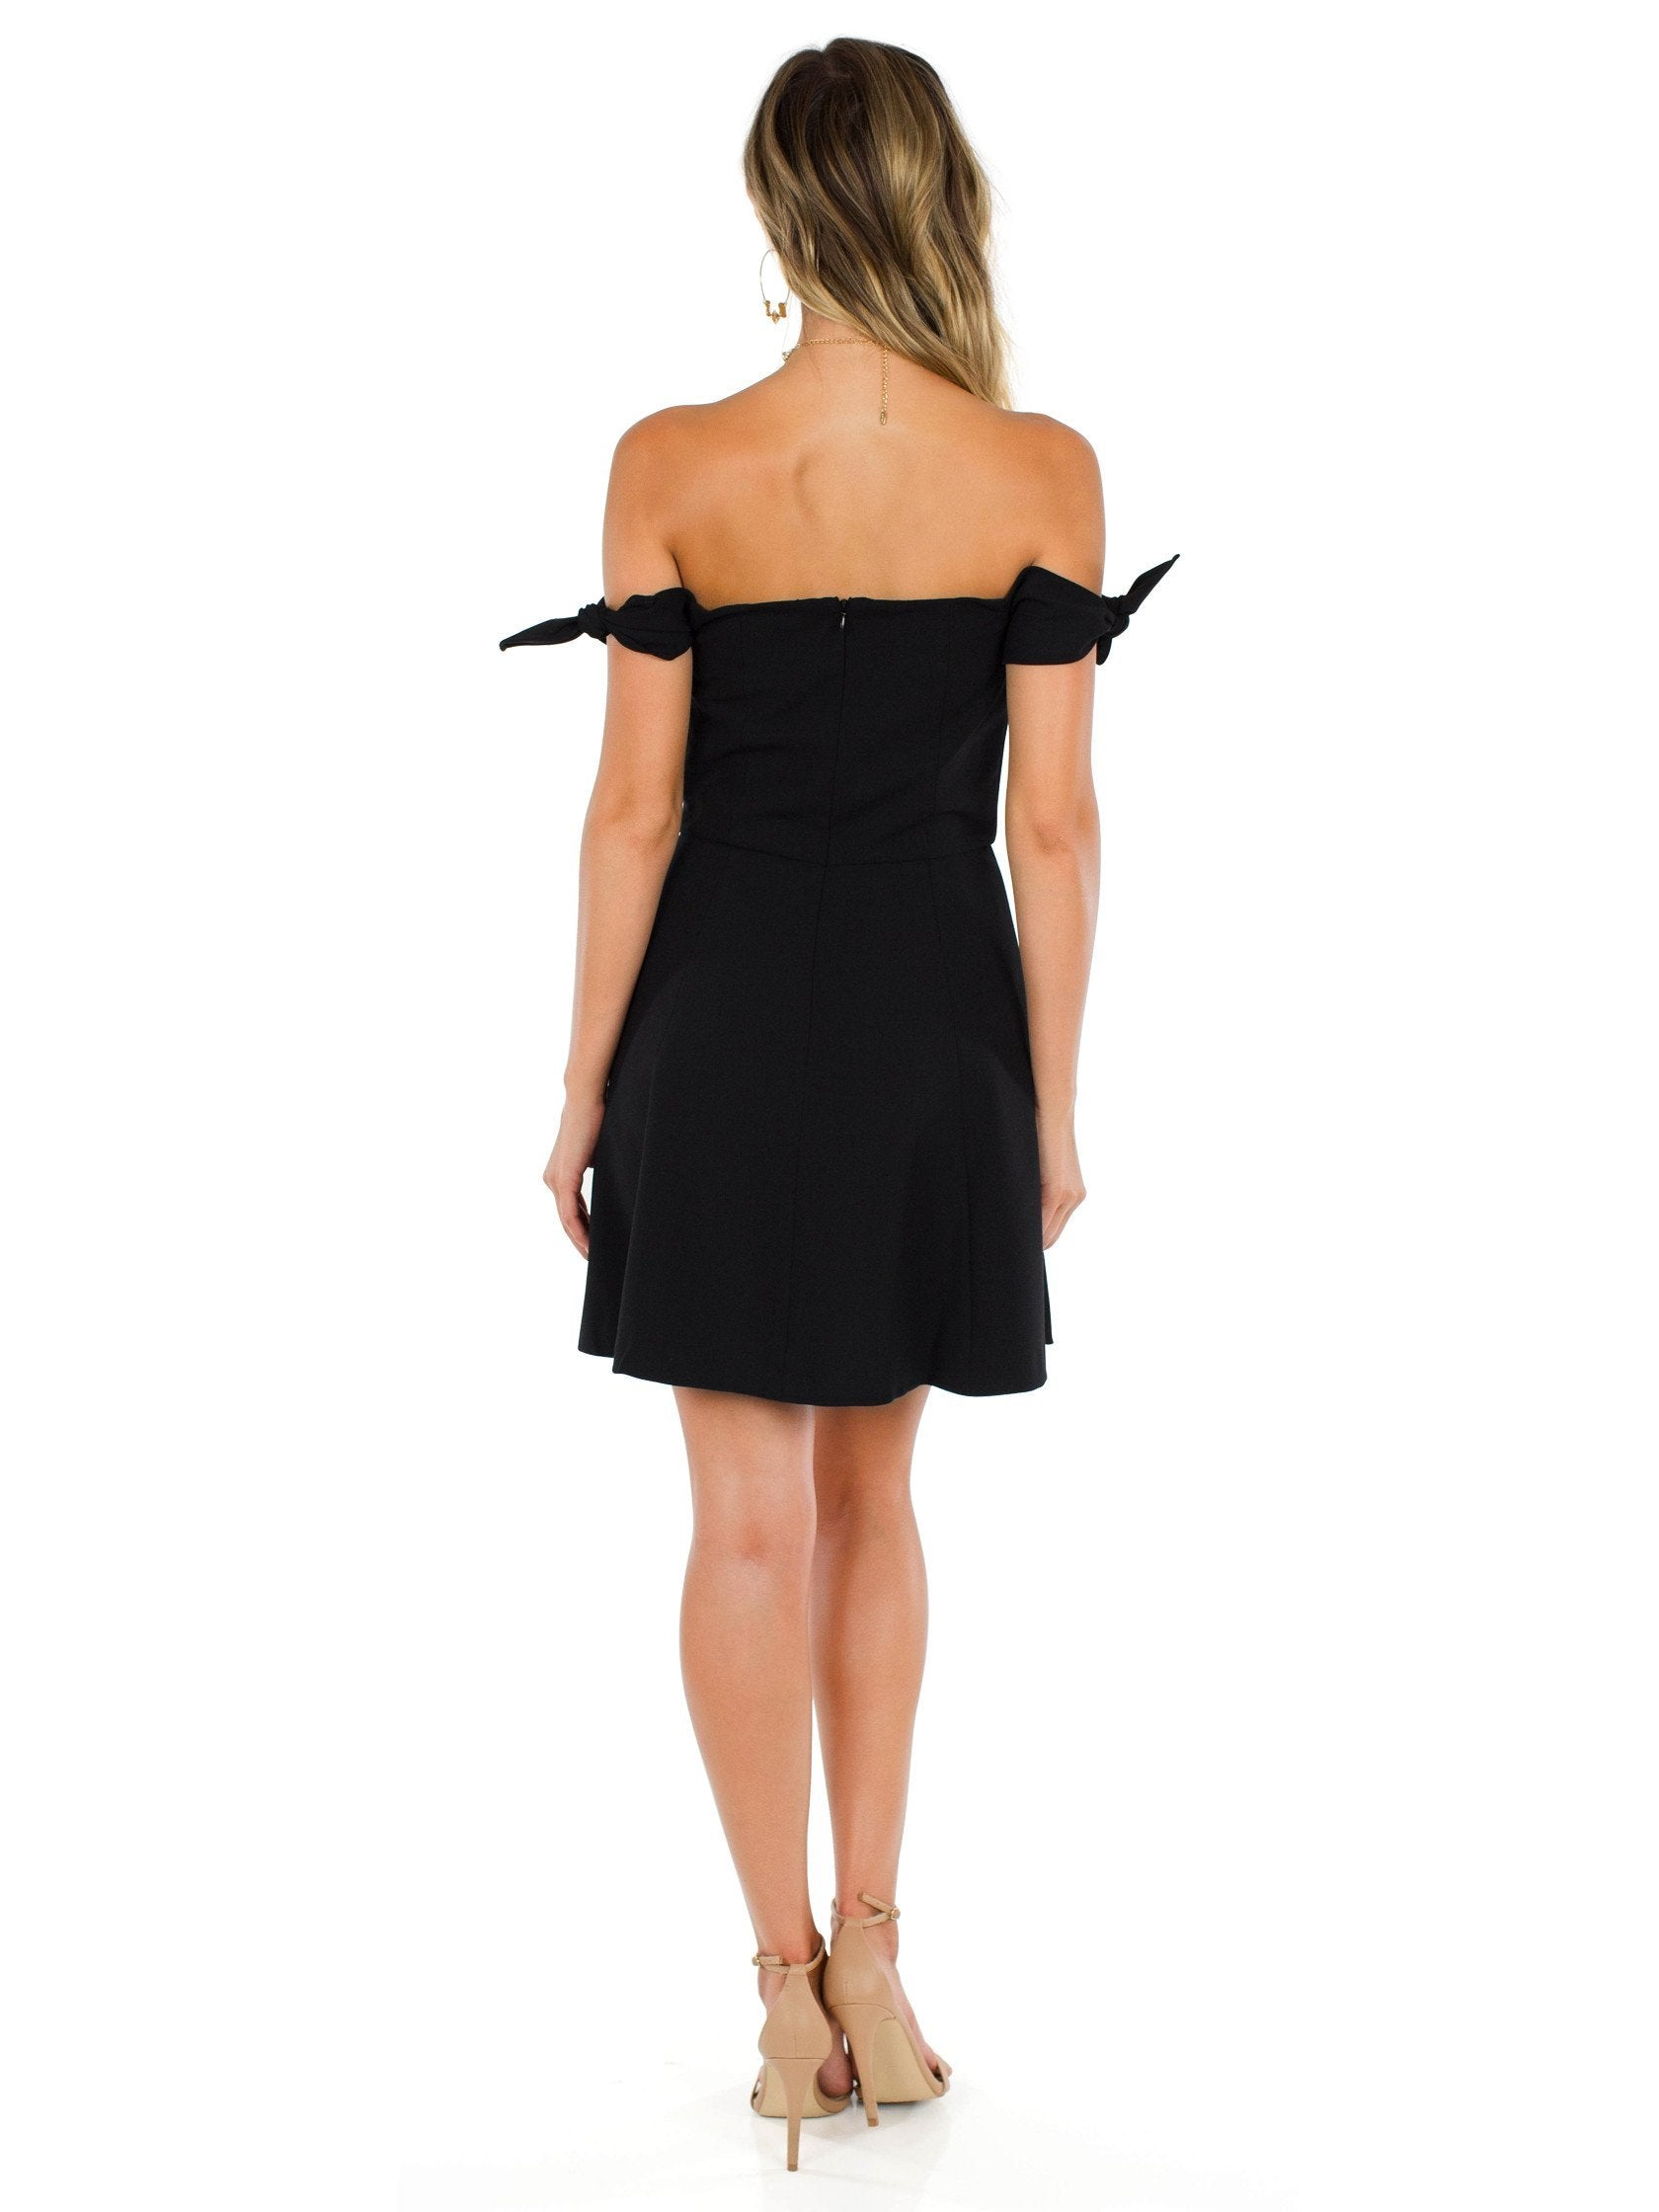 Women wearing a dress rental from French Connection called Whisper Light Off The Shoulder Dress